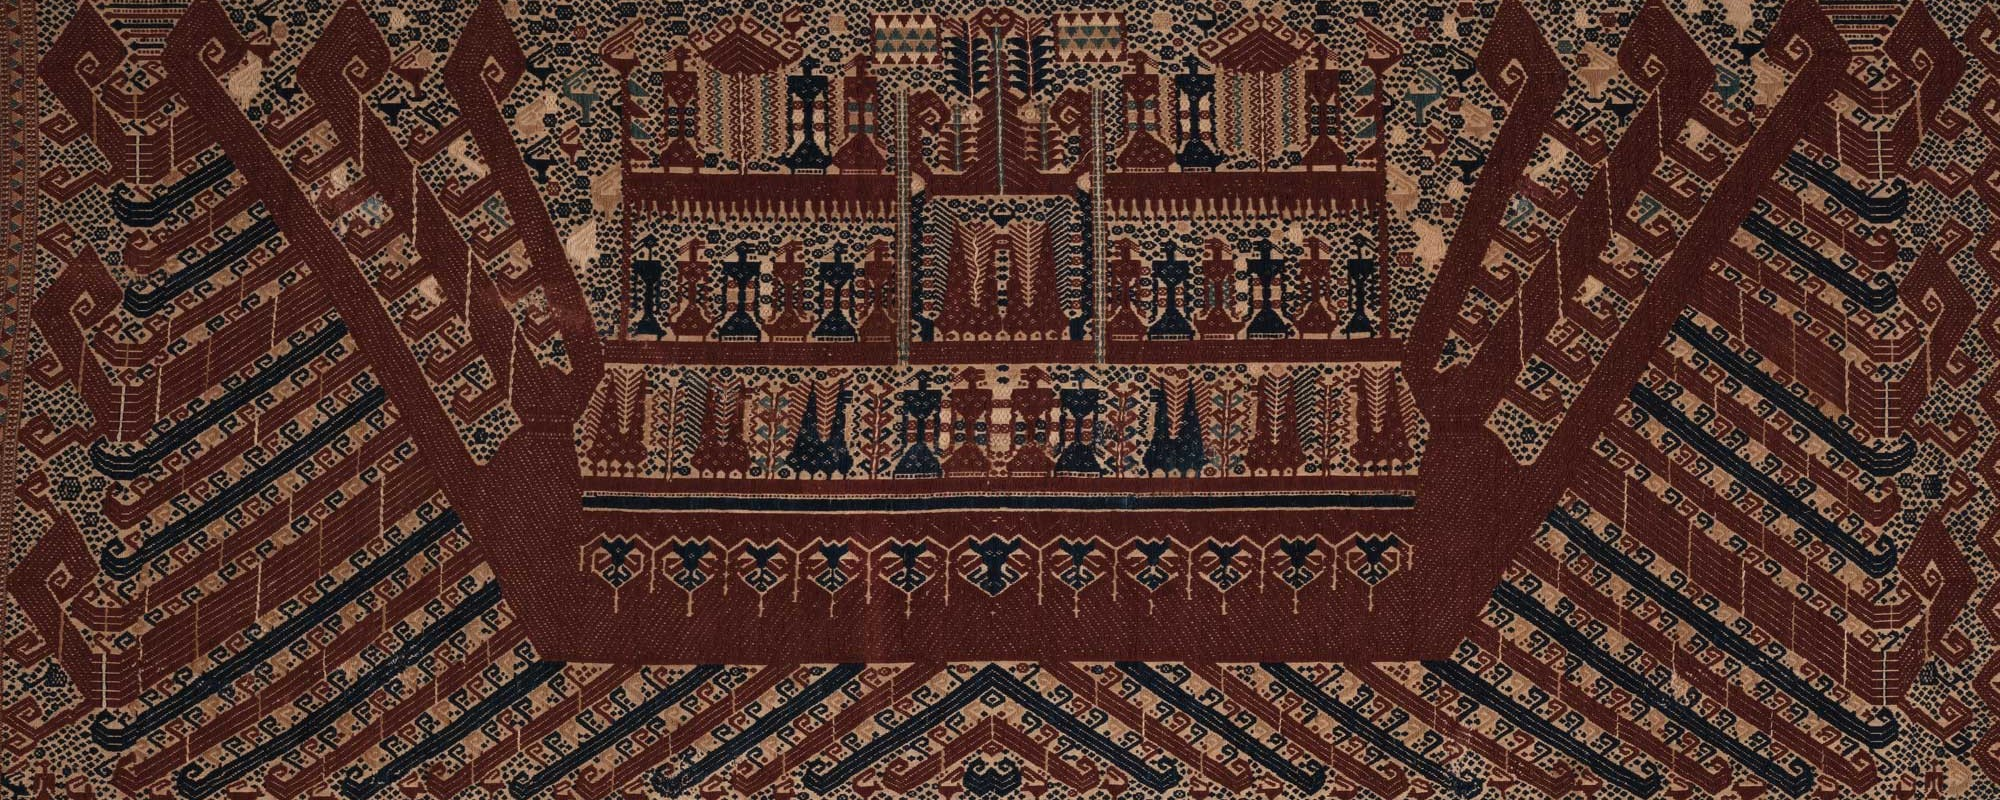 The Sumatran Ship Cloth